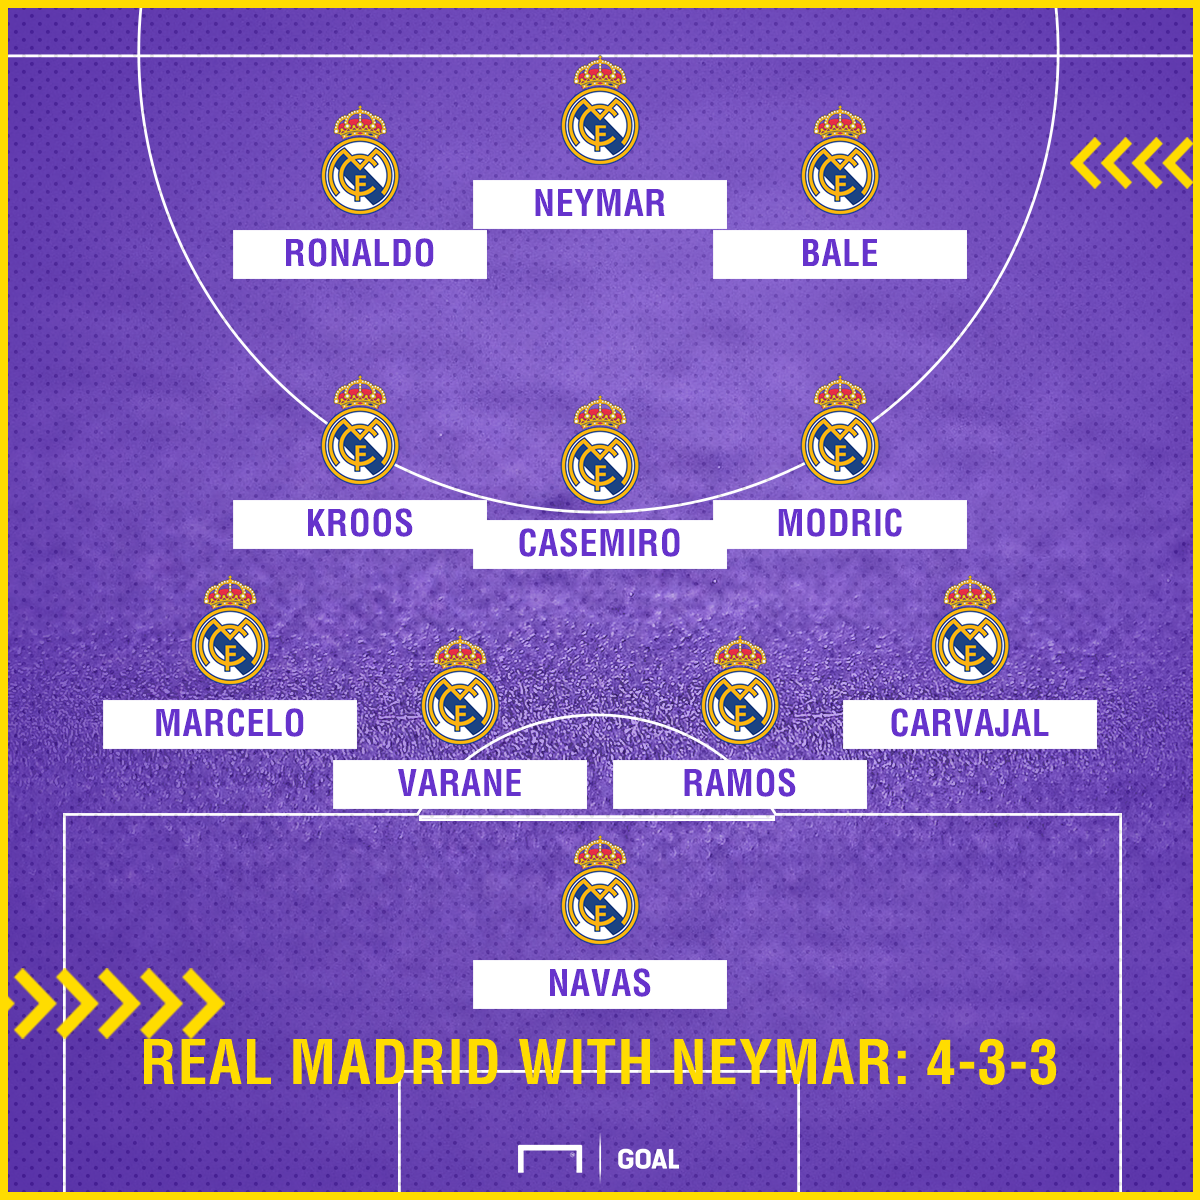 Real Madrid with Neymar 4-3-3